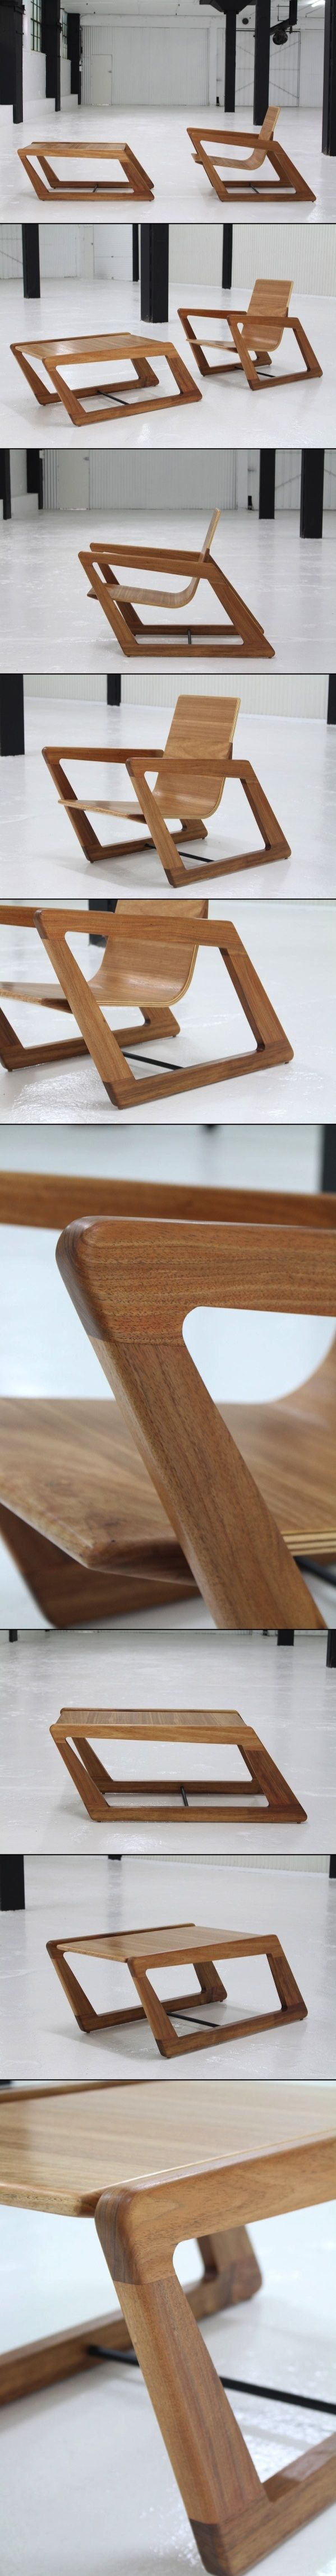 Modern, Sustainable & Slanted: Chair and Table by Cummins Design Cummins Design, out of Sydney, Australia, designed this angular set that includes the PSA2 armchair and the matching PSCT coffee table. Each piece is handcrafted out of sustainable Australian materials, including solid Tasmanian Blackwood, solid and veneer Blackbutt, and Hoop Pine plywood.